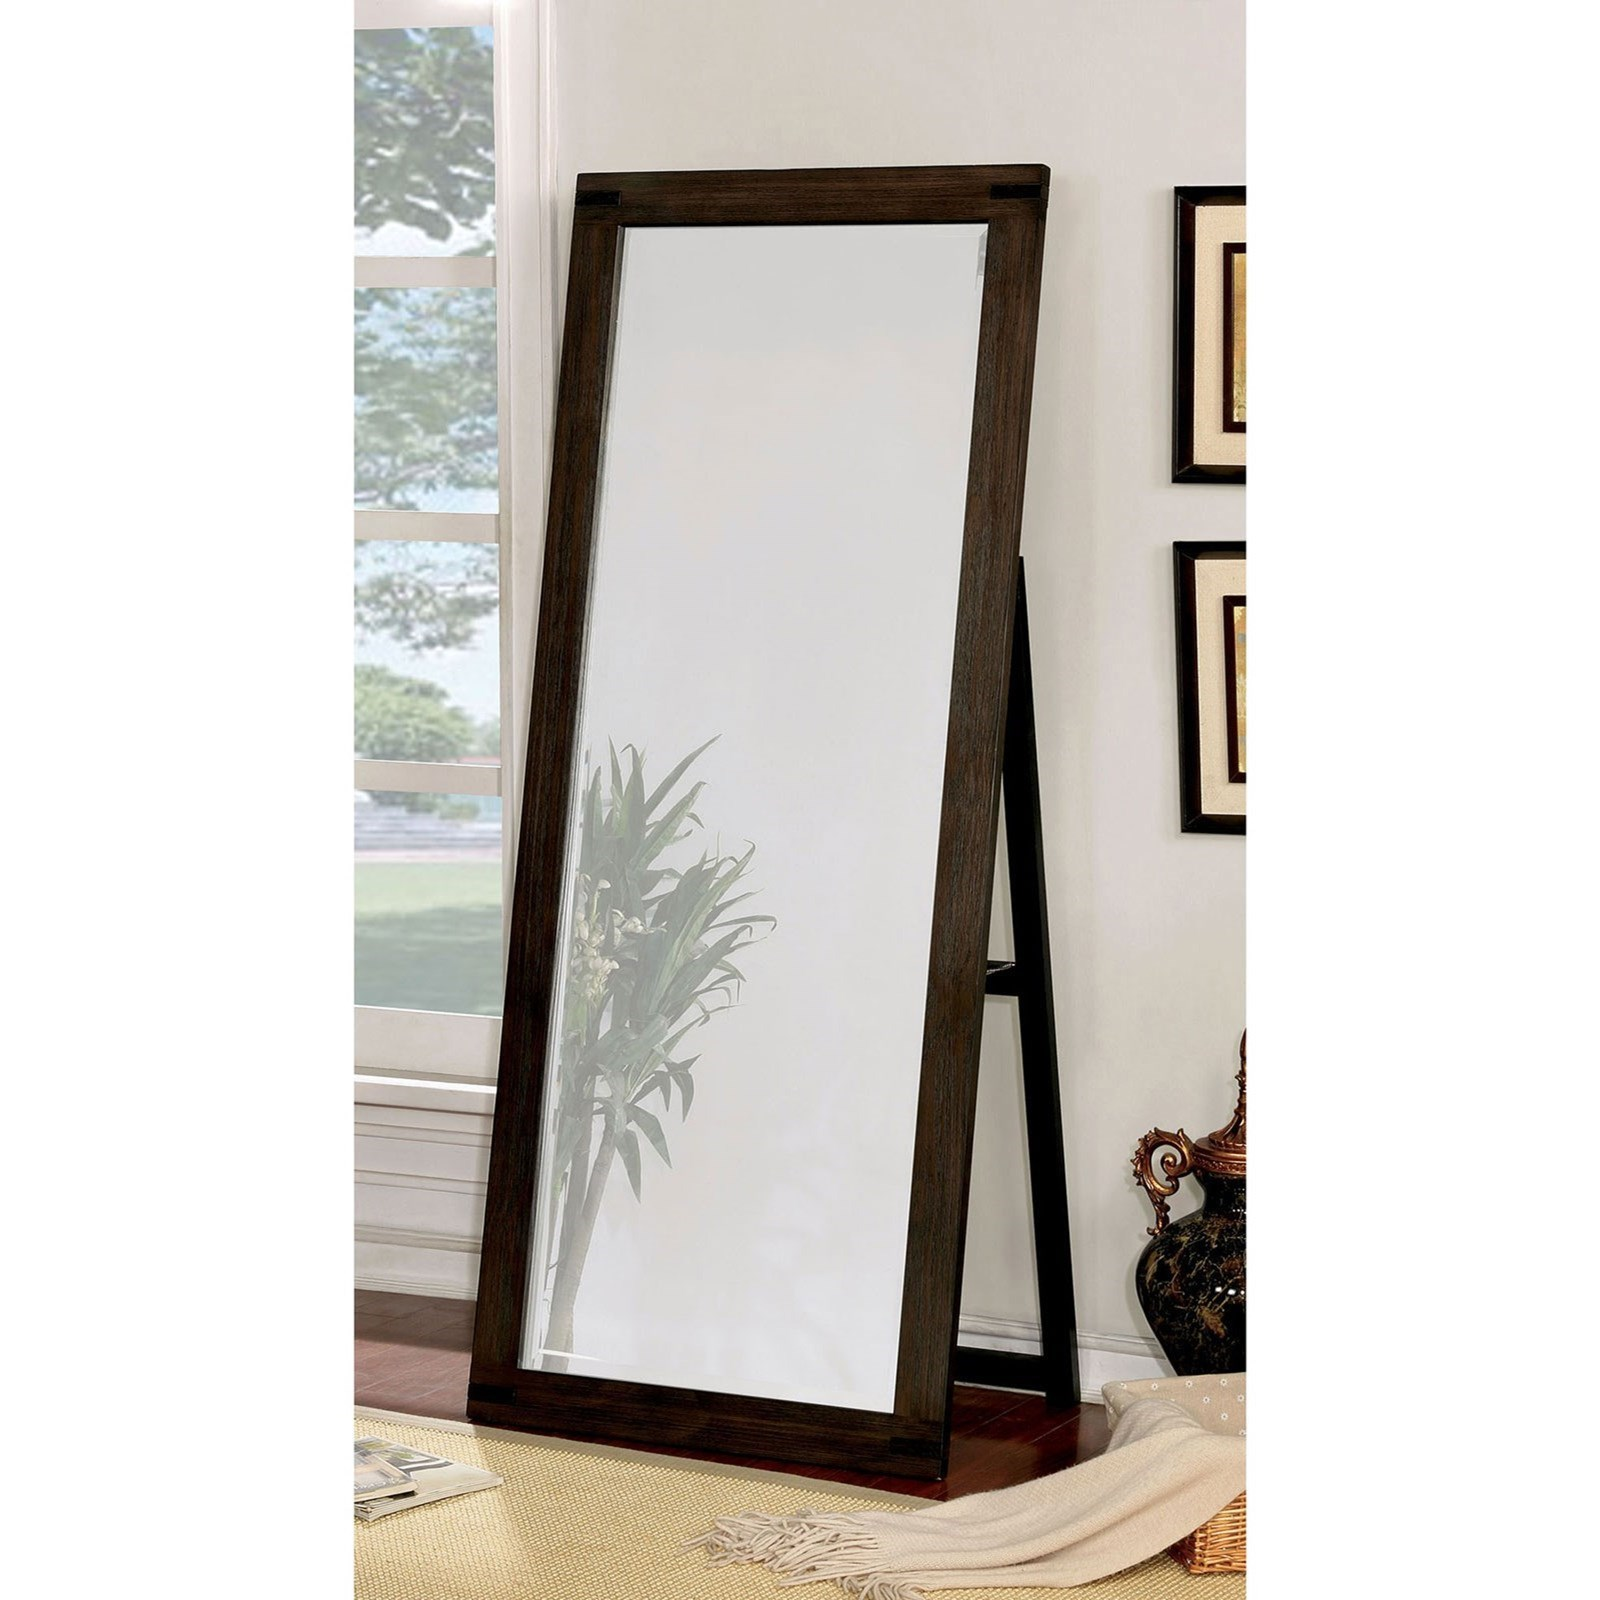 Standing Mirror Rexburg Transitional Standing Mirror By Furniture Of America At Rooms For Less